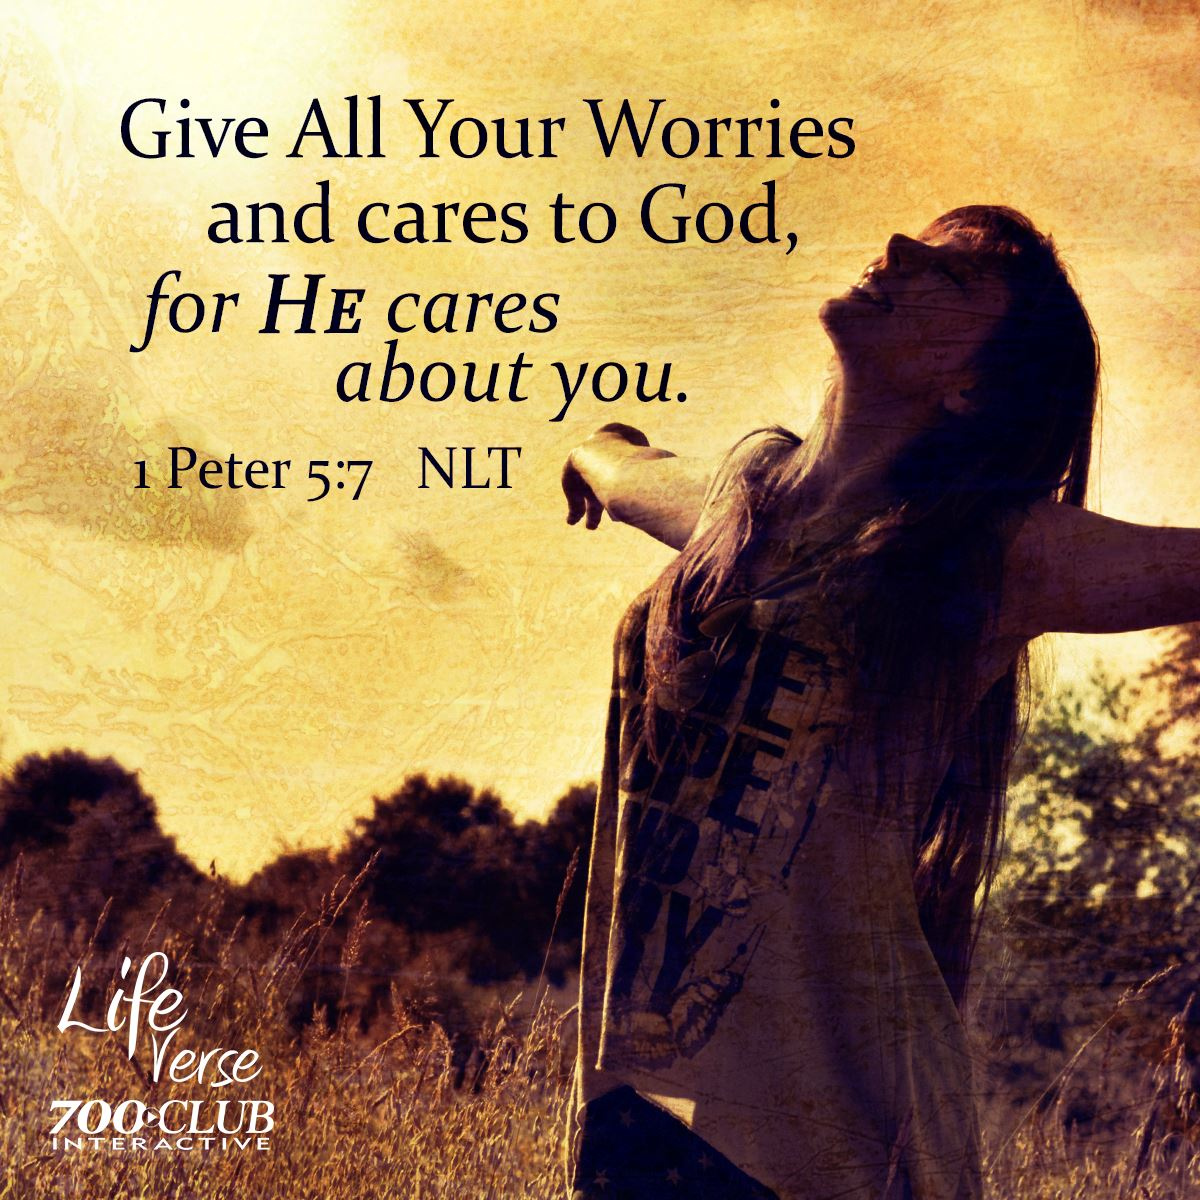 Give all your worries and cares to God, for He cares about you. 1 Peter 5v17